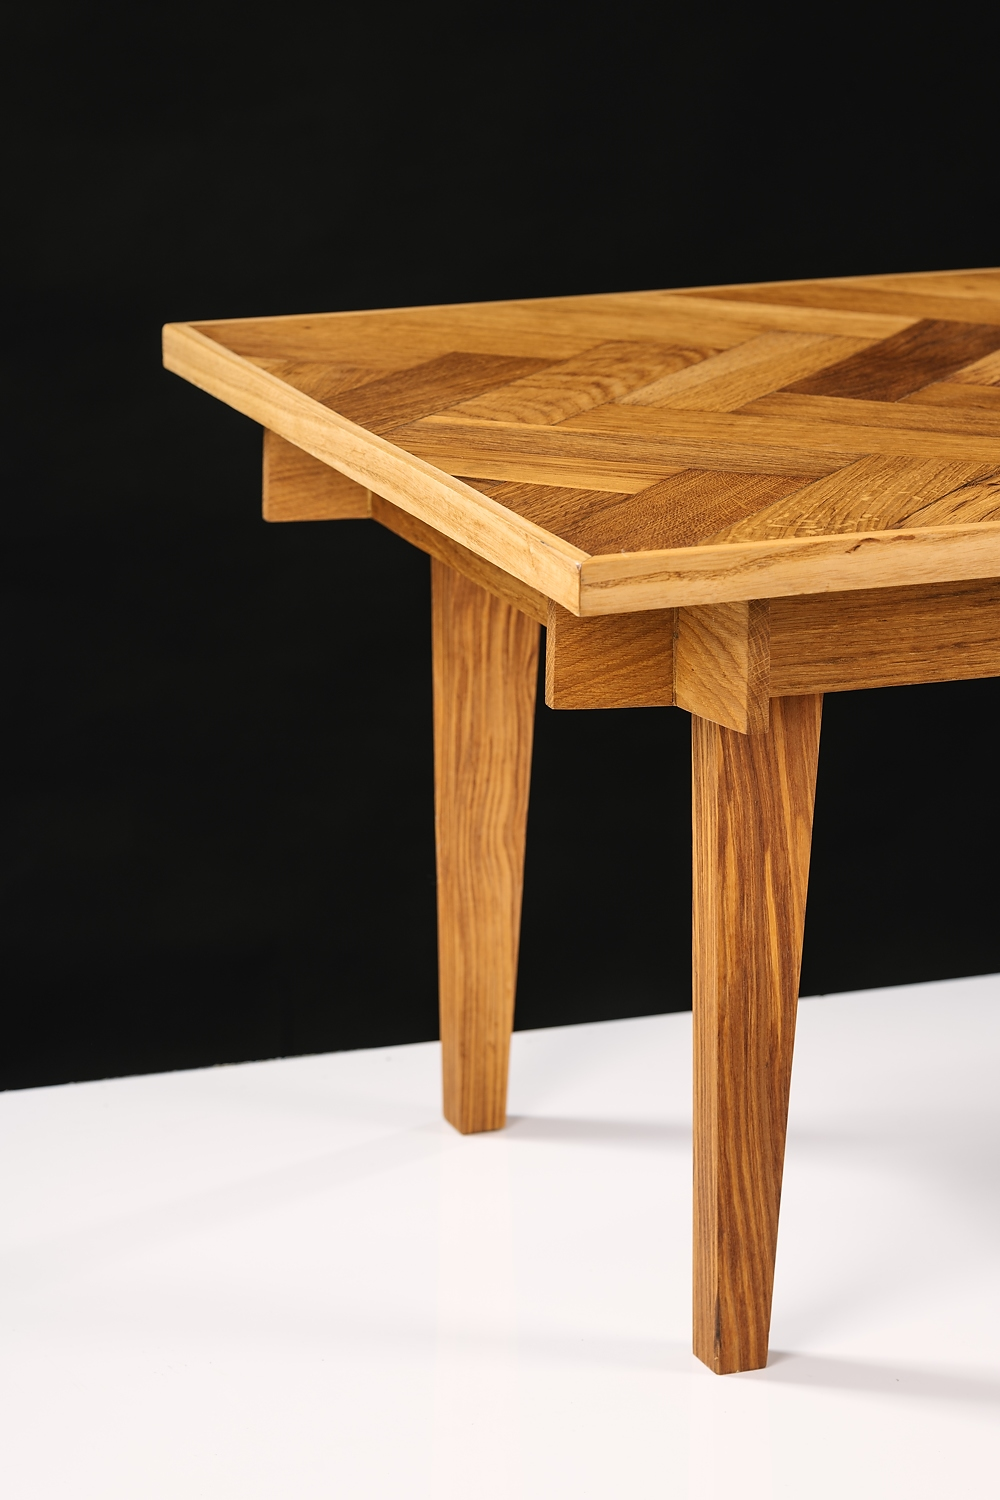 Furniture photography, studio photography